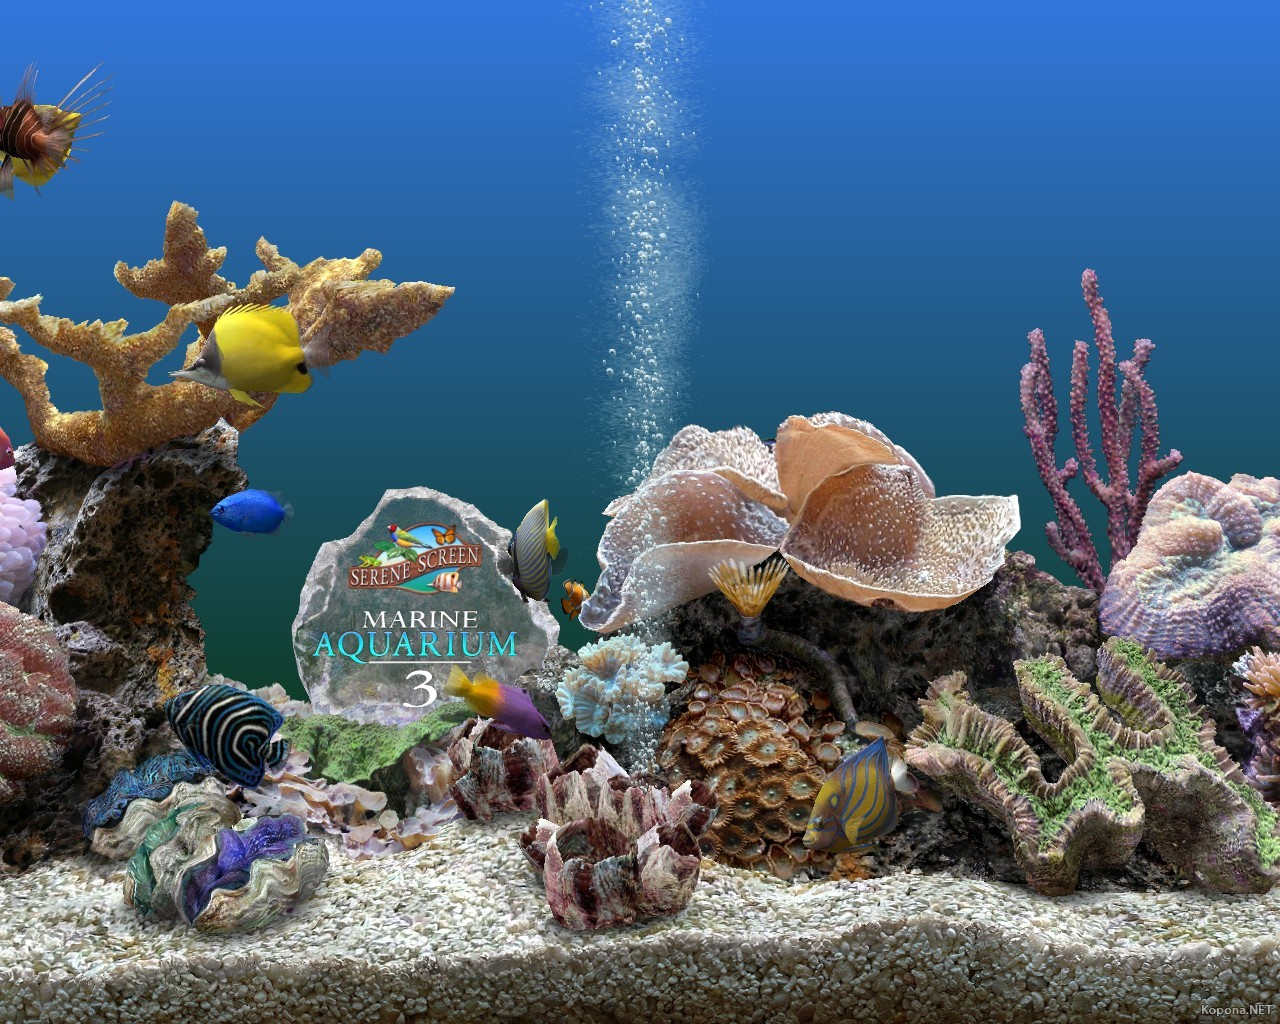 Marine Aquarium Services Marine Aquarium Pictures to pin on Pinterest